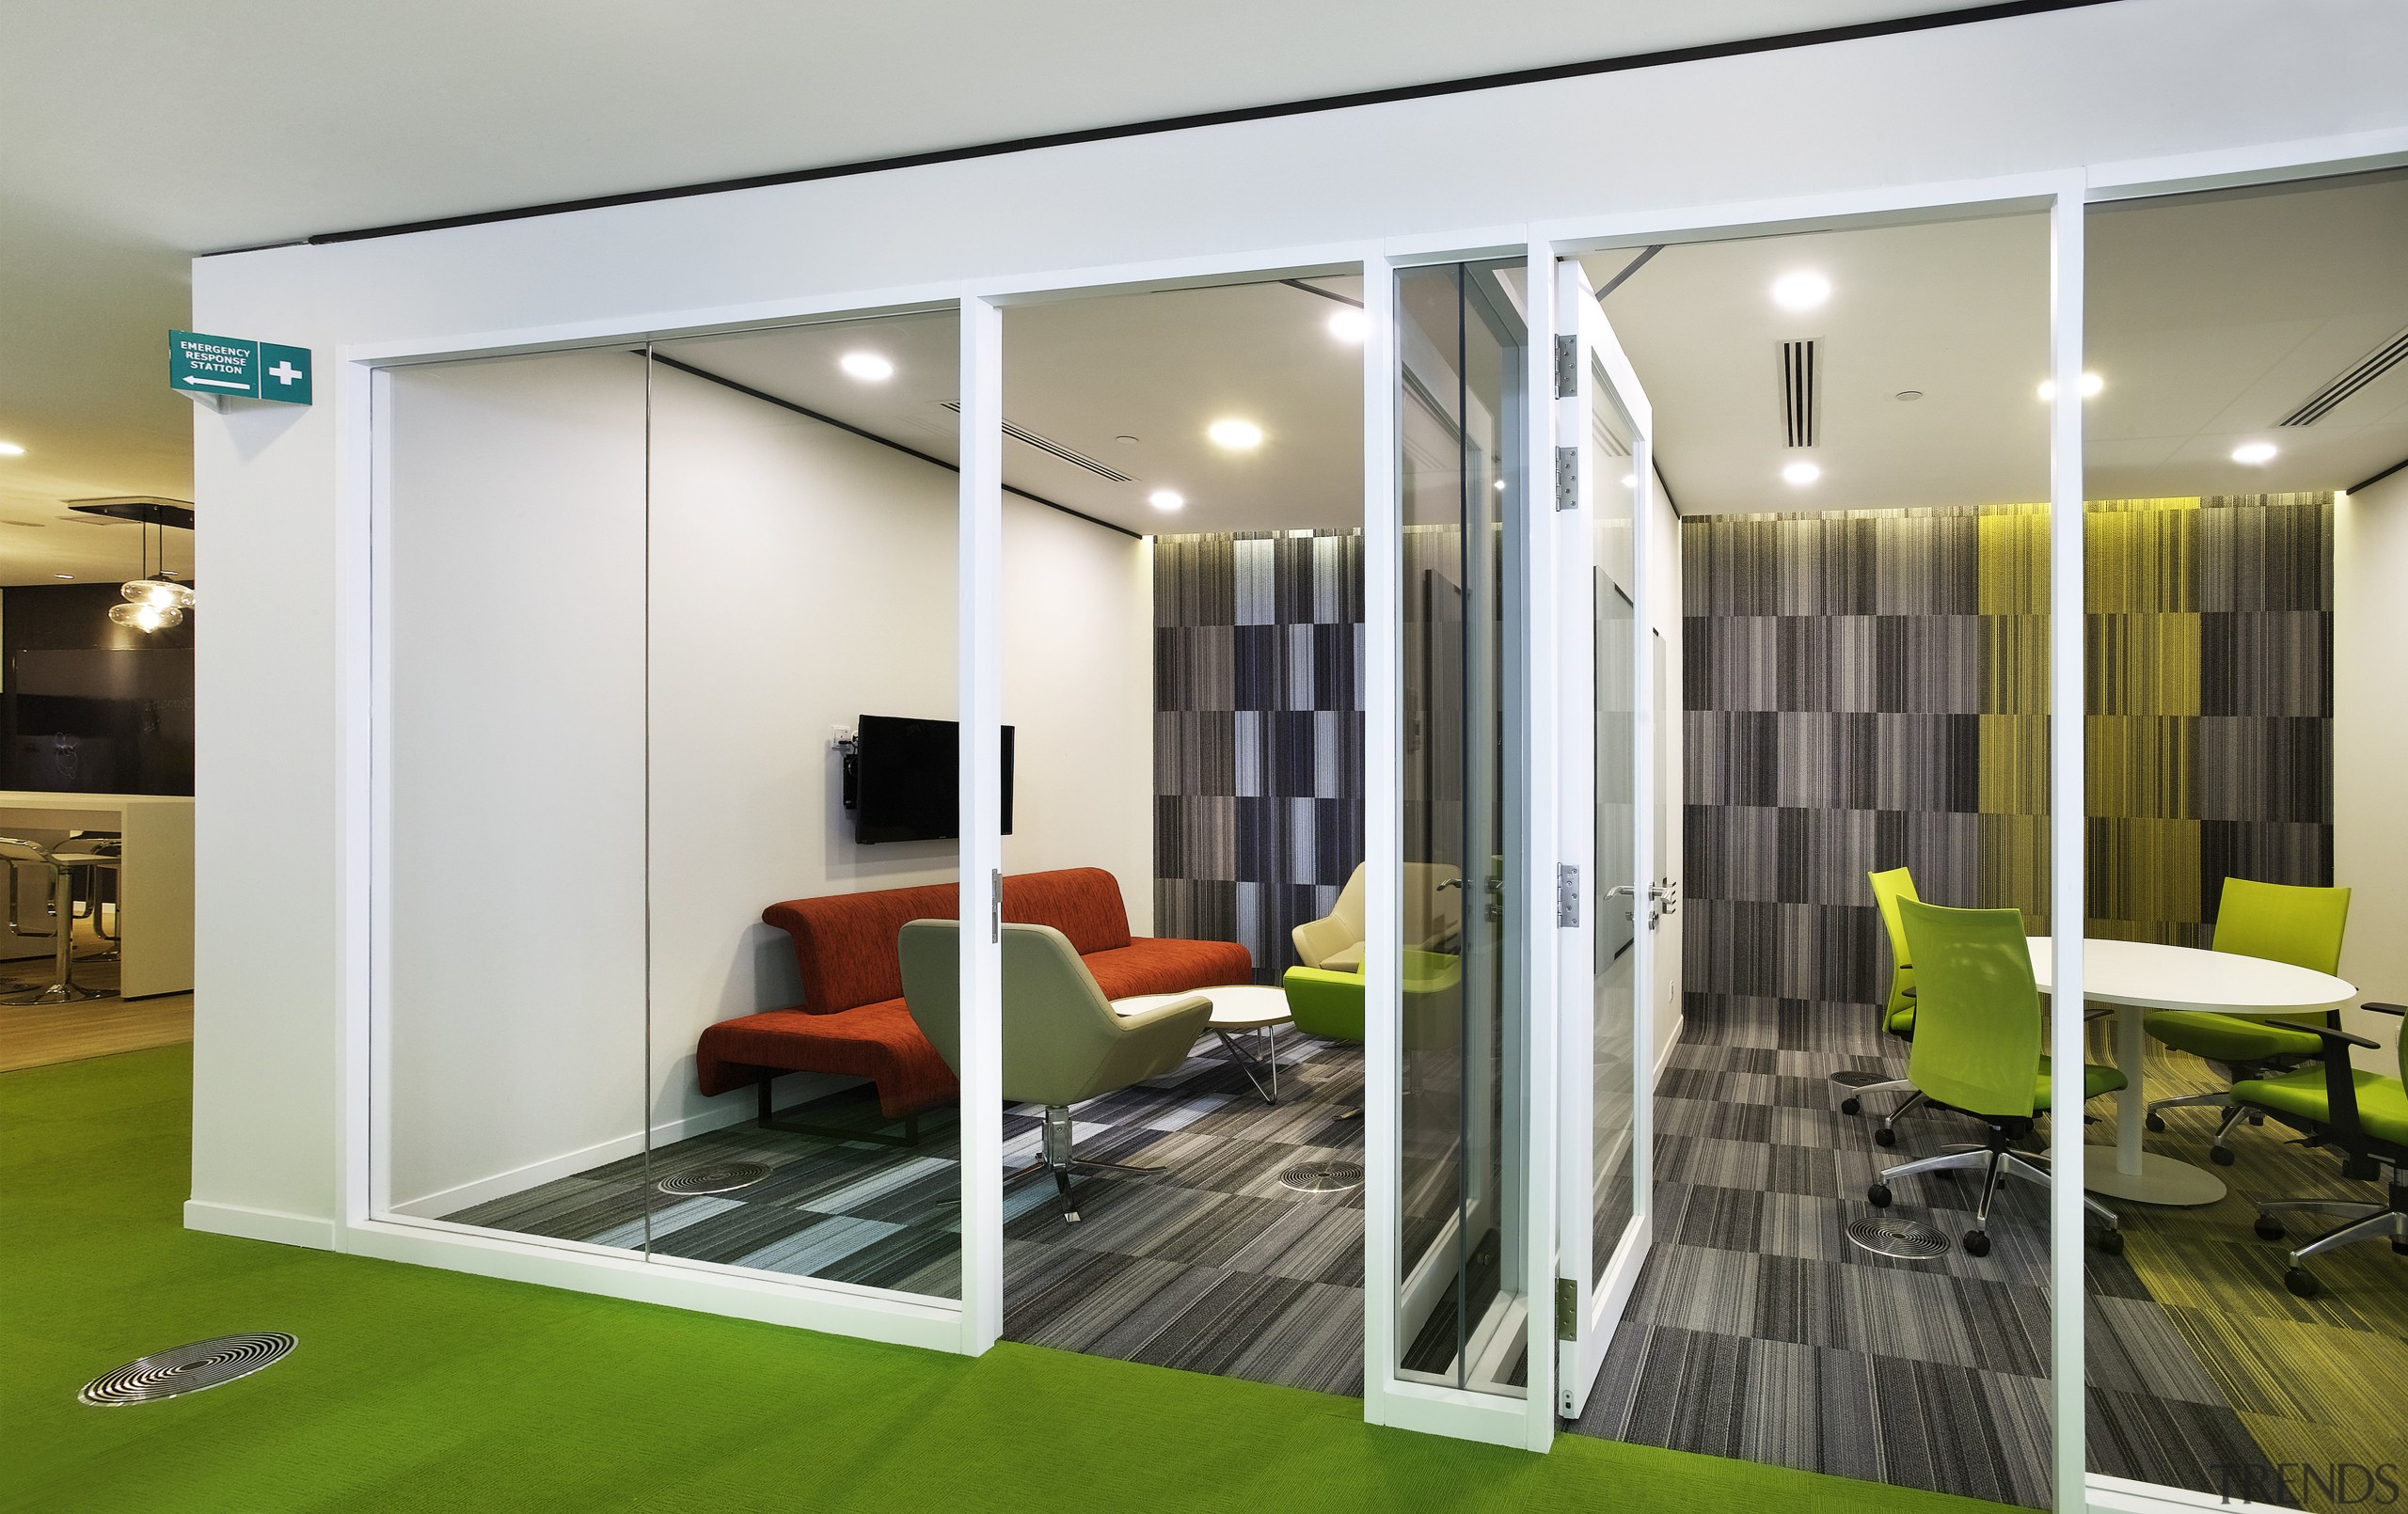 Typical meeting rooms on office floors of the architecture, ceiling, interior design, lobby, real estate, white, gray